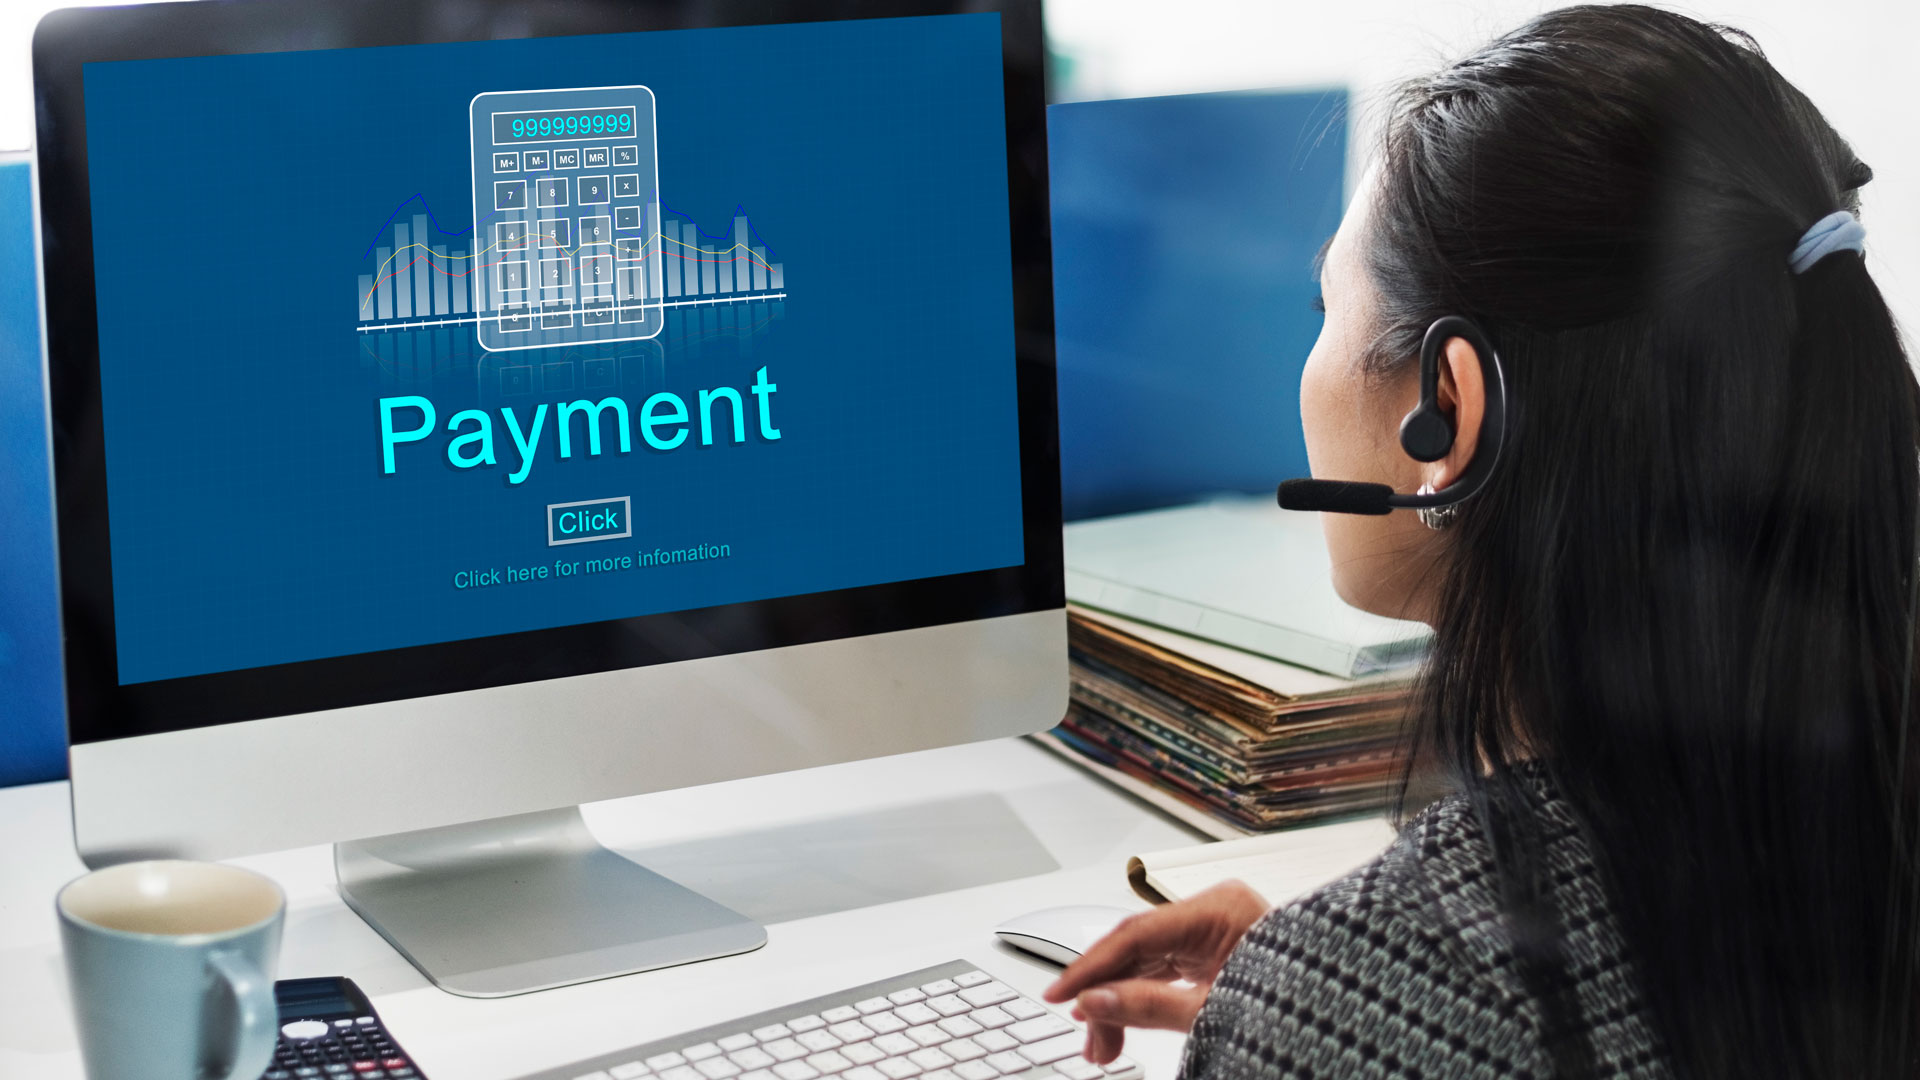 Every business owner should read these tips for chasing payments